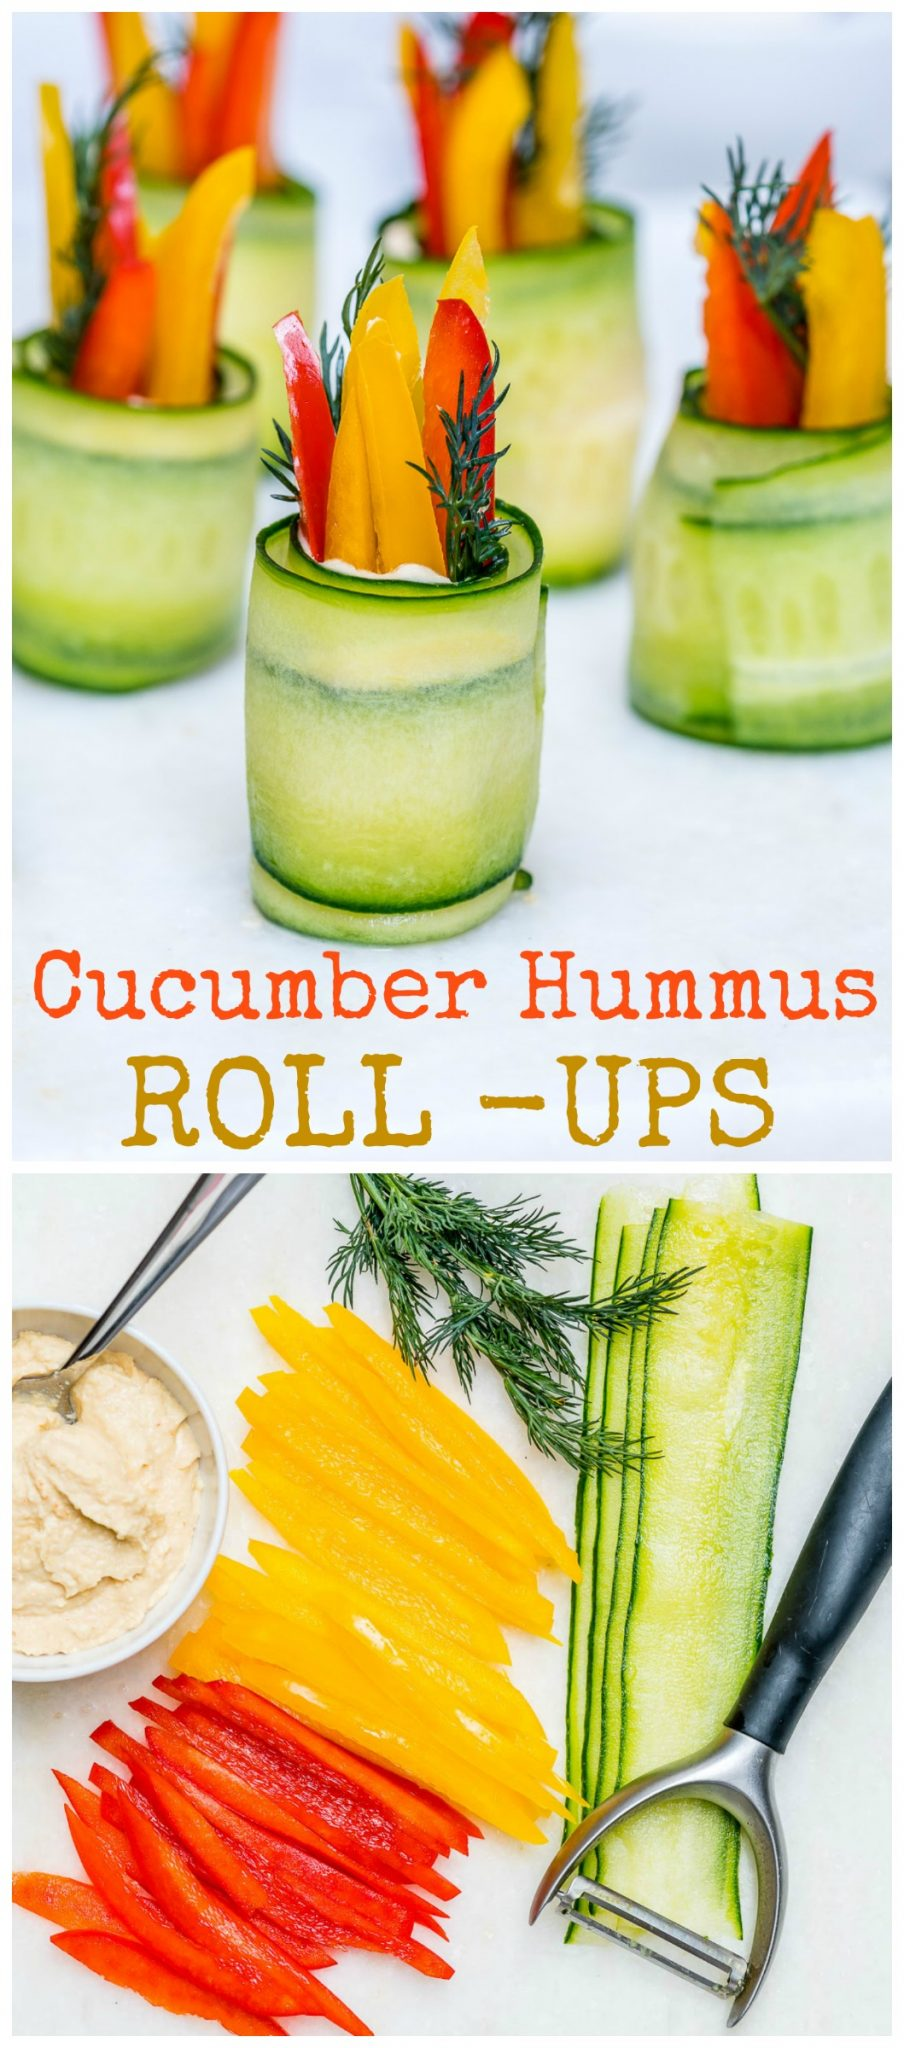 Hummus Cucumber Roll-Ups Clean Snacks